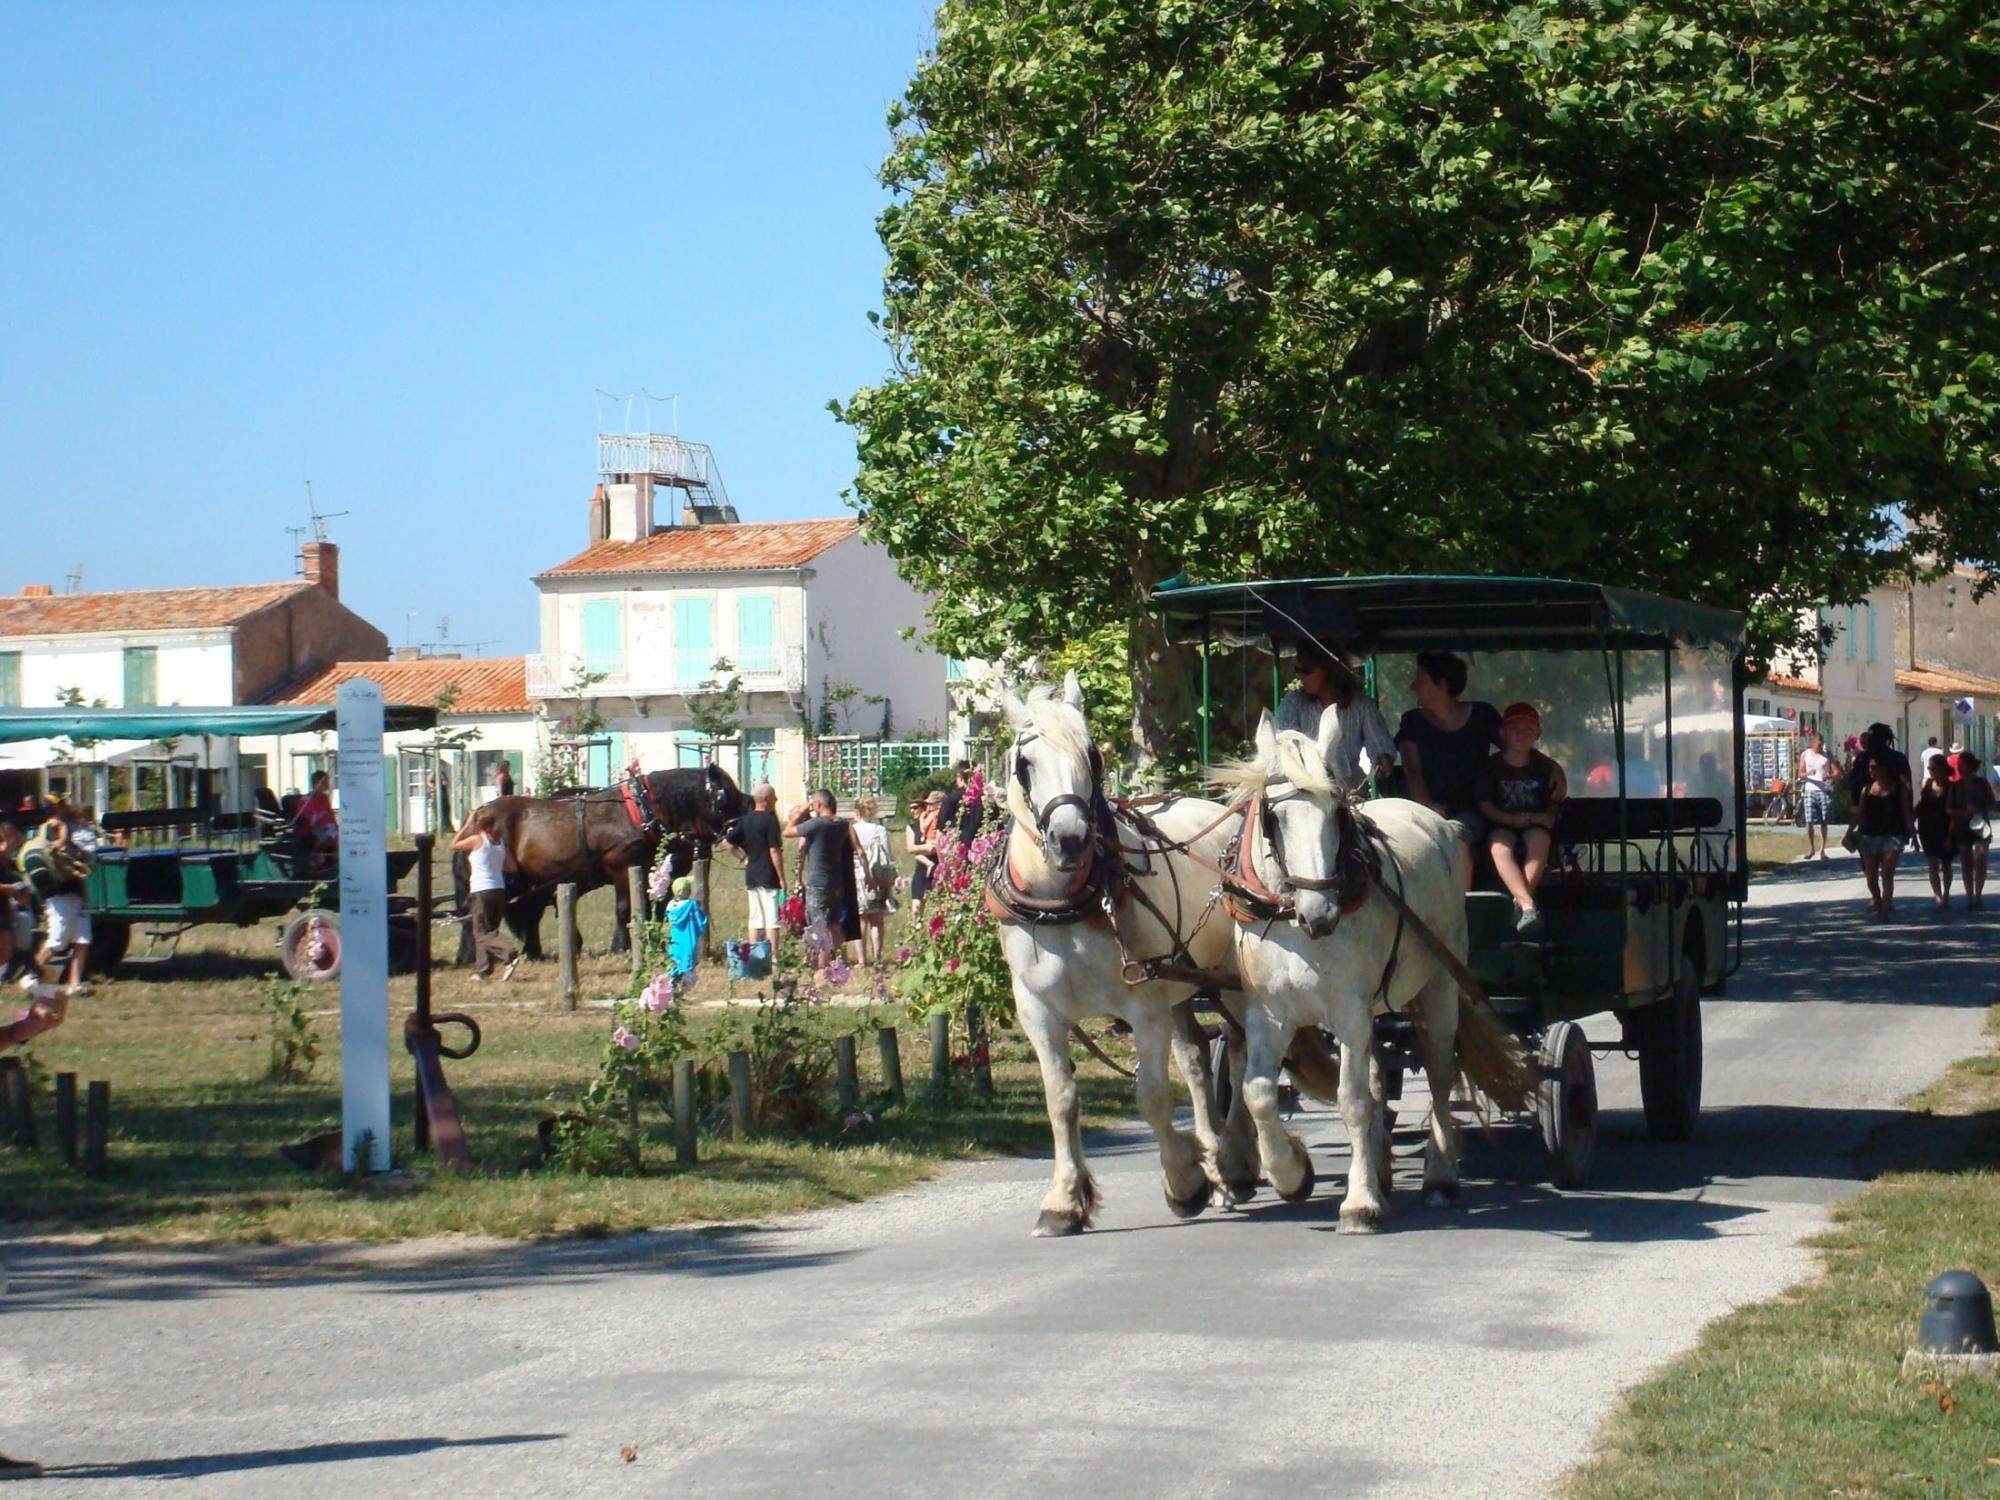 Aix island by horse an carriage - Crossings by ferry boats Fouras / Aix island